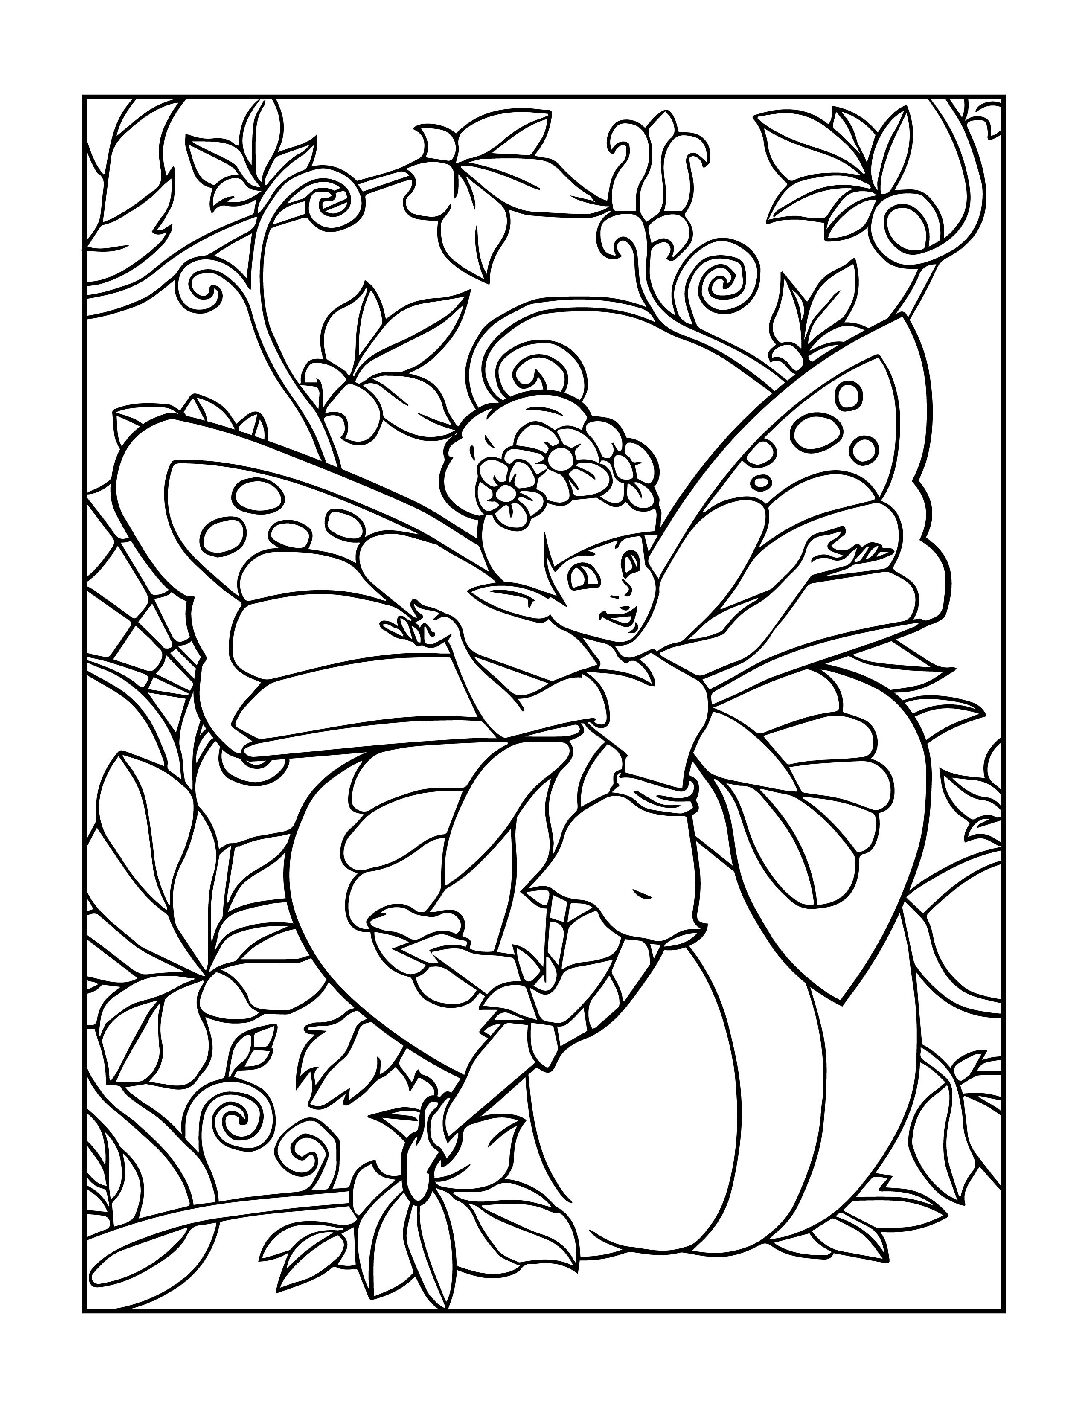 Coloring-Pages-Fairies-5-01-pdf Free Printable Fairy Colouring Pages